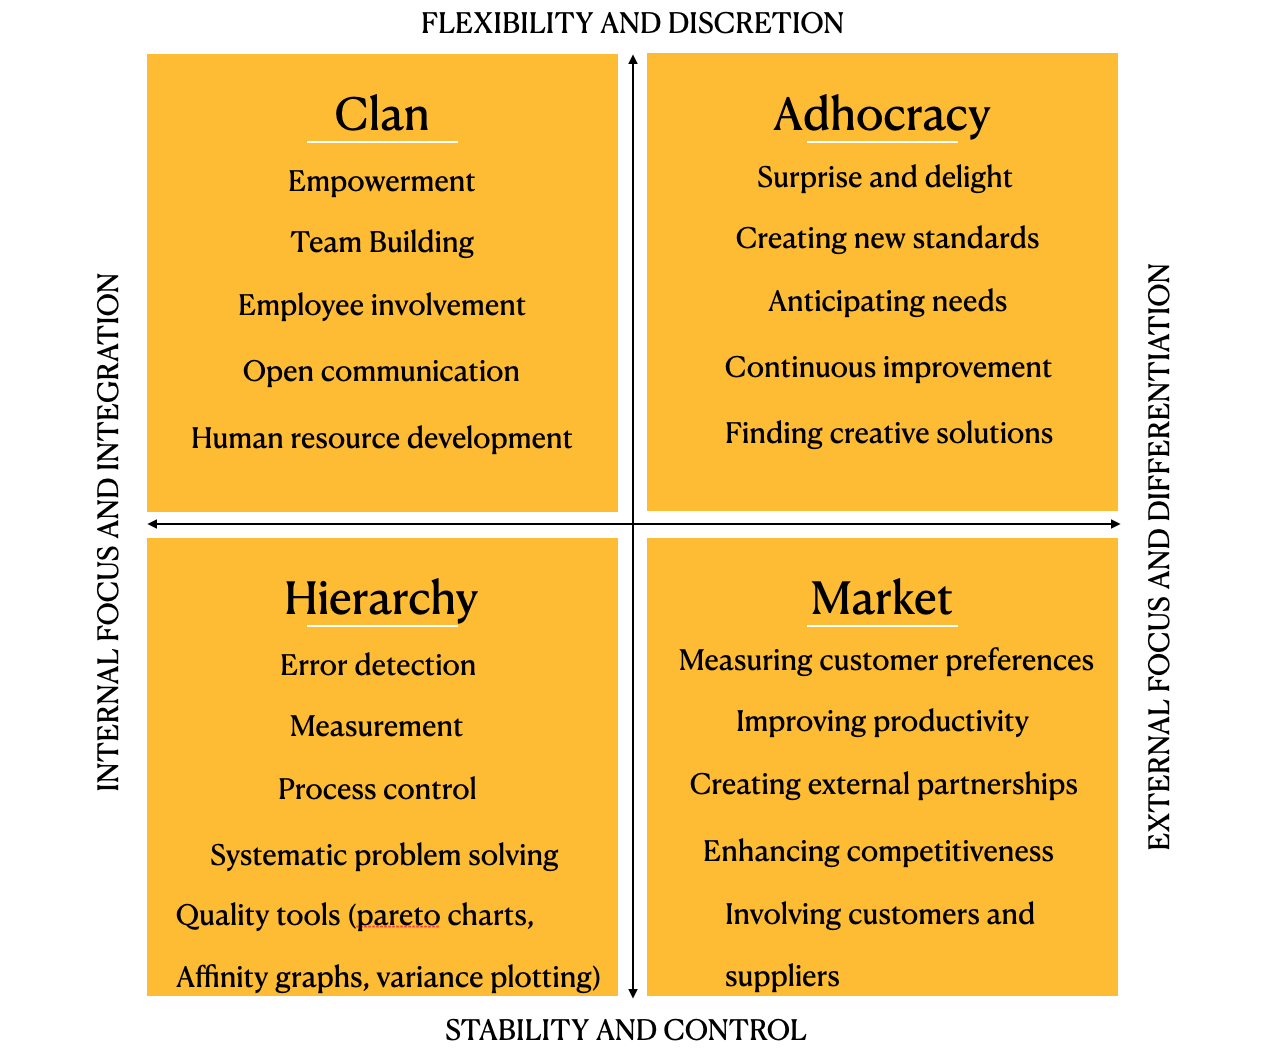 Competing values quadrant from a Management point of view